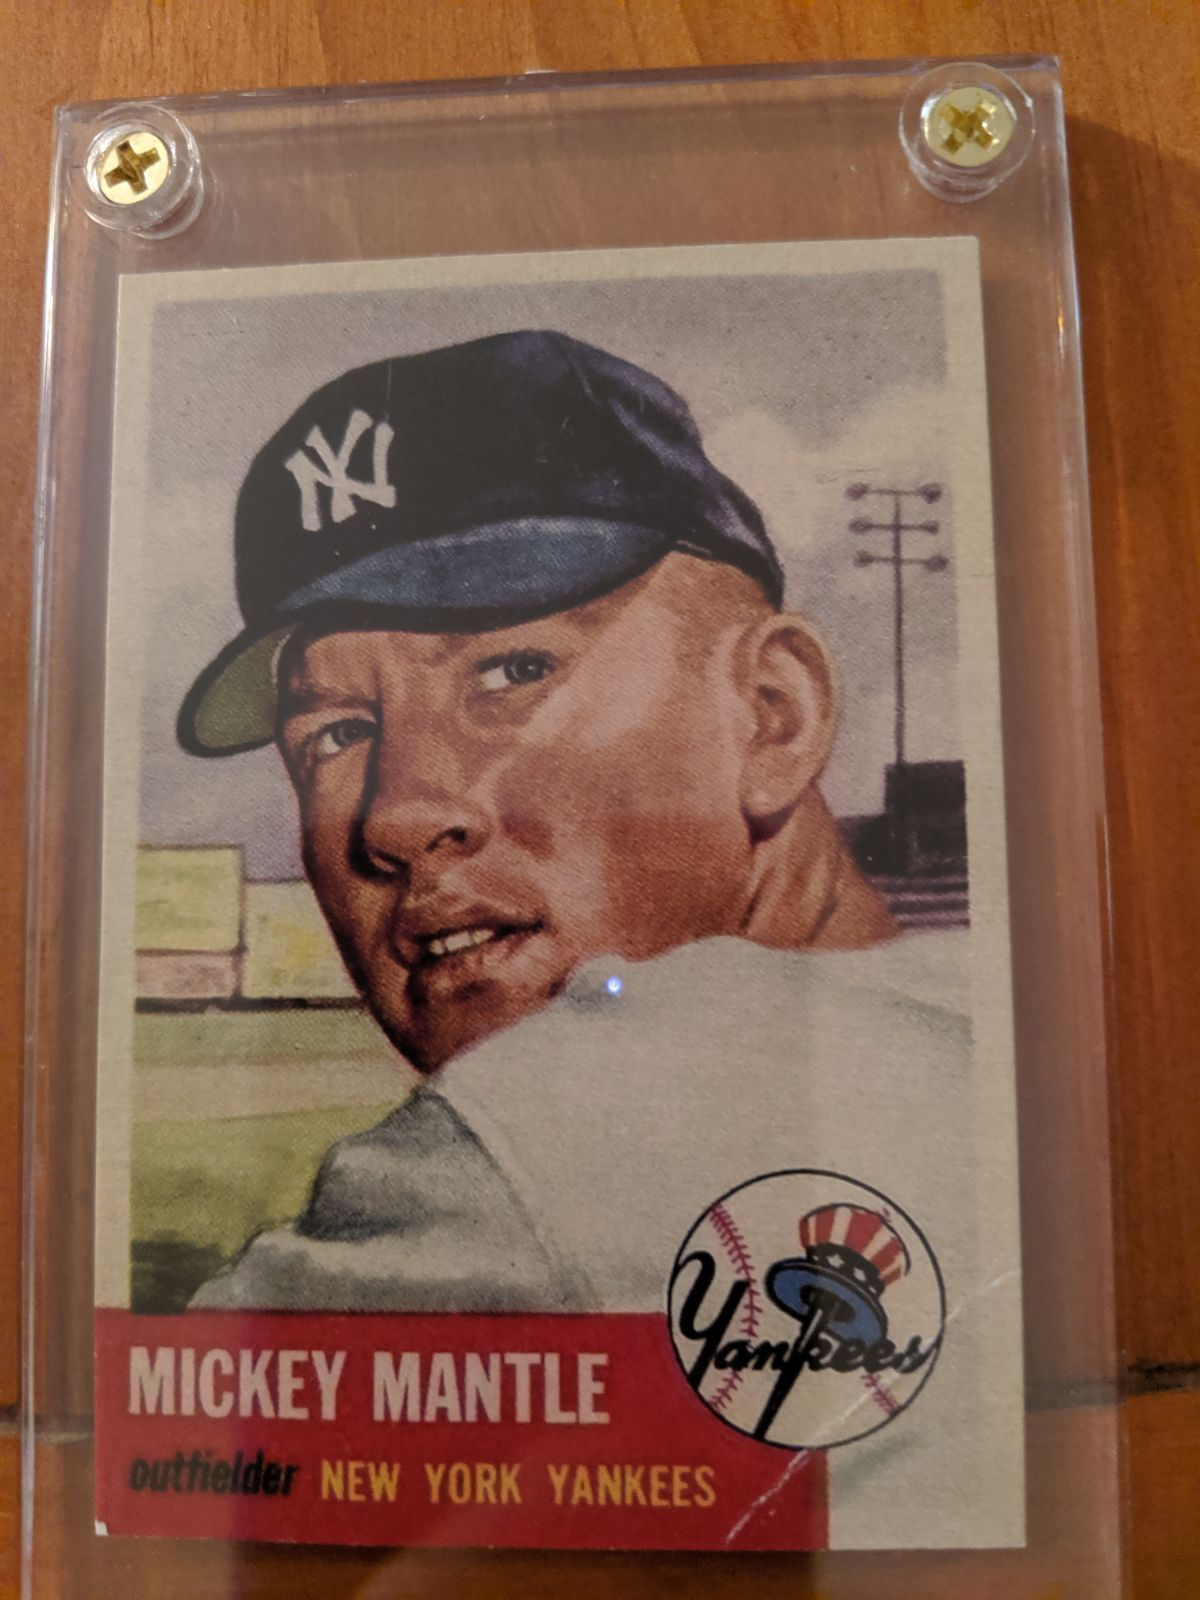 1953 topps mickey mantle 2nd year card selling as a